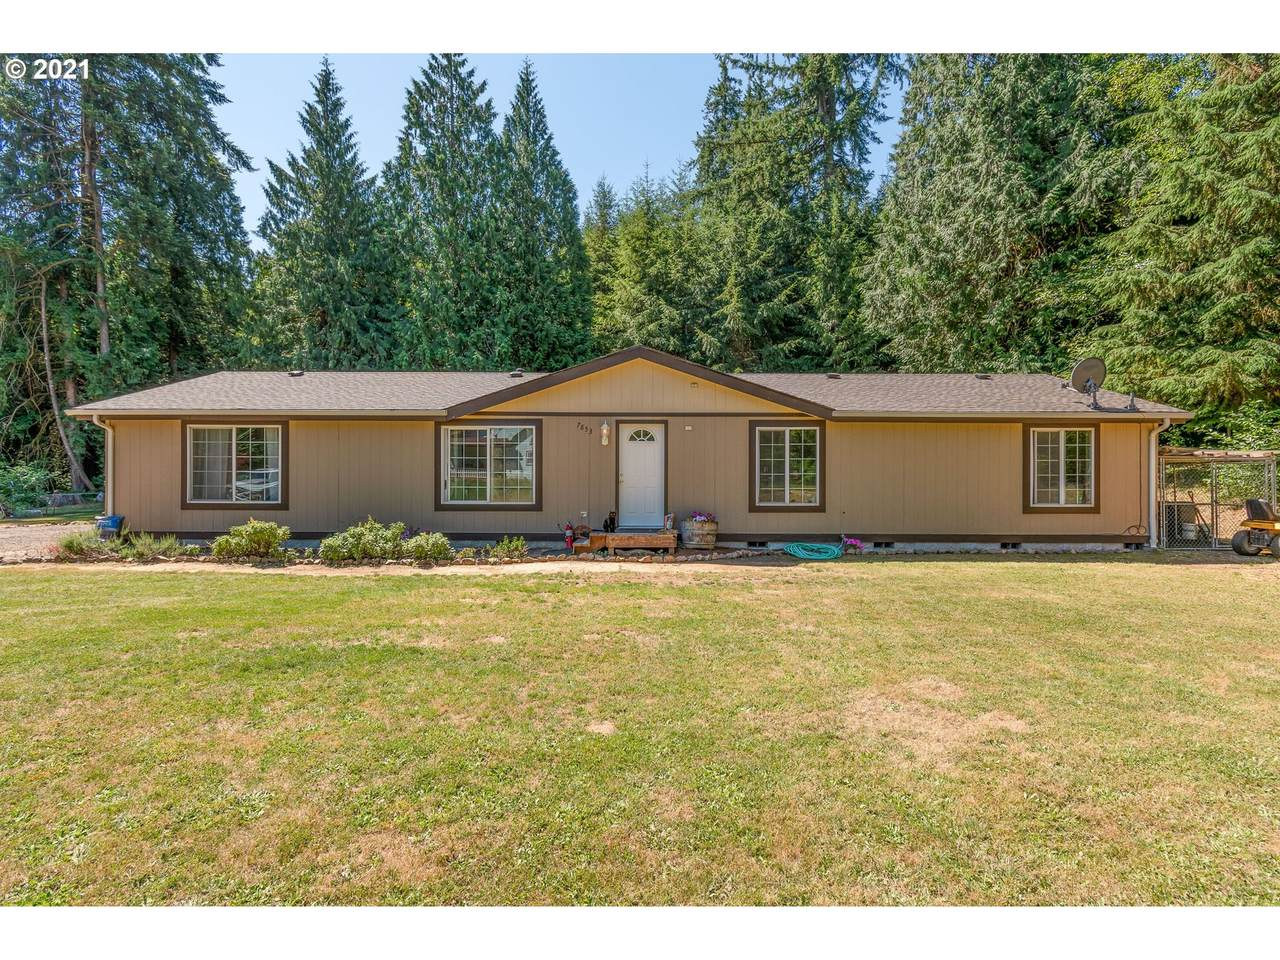 7853 Lewis River Rd - Photo 1